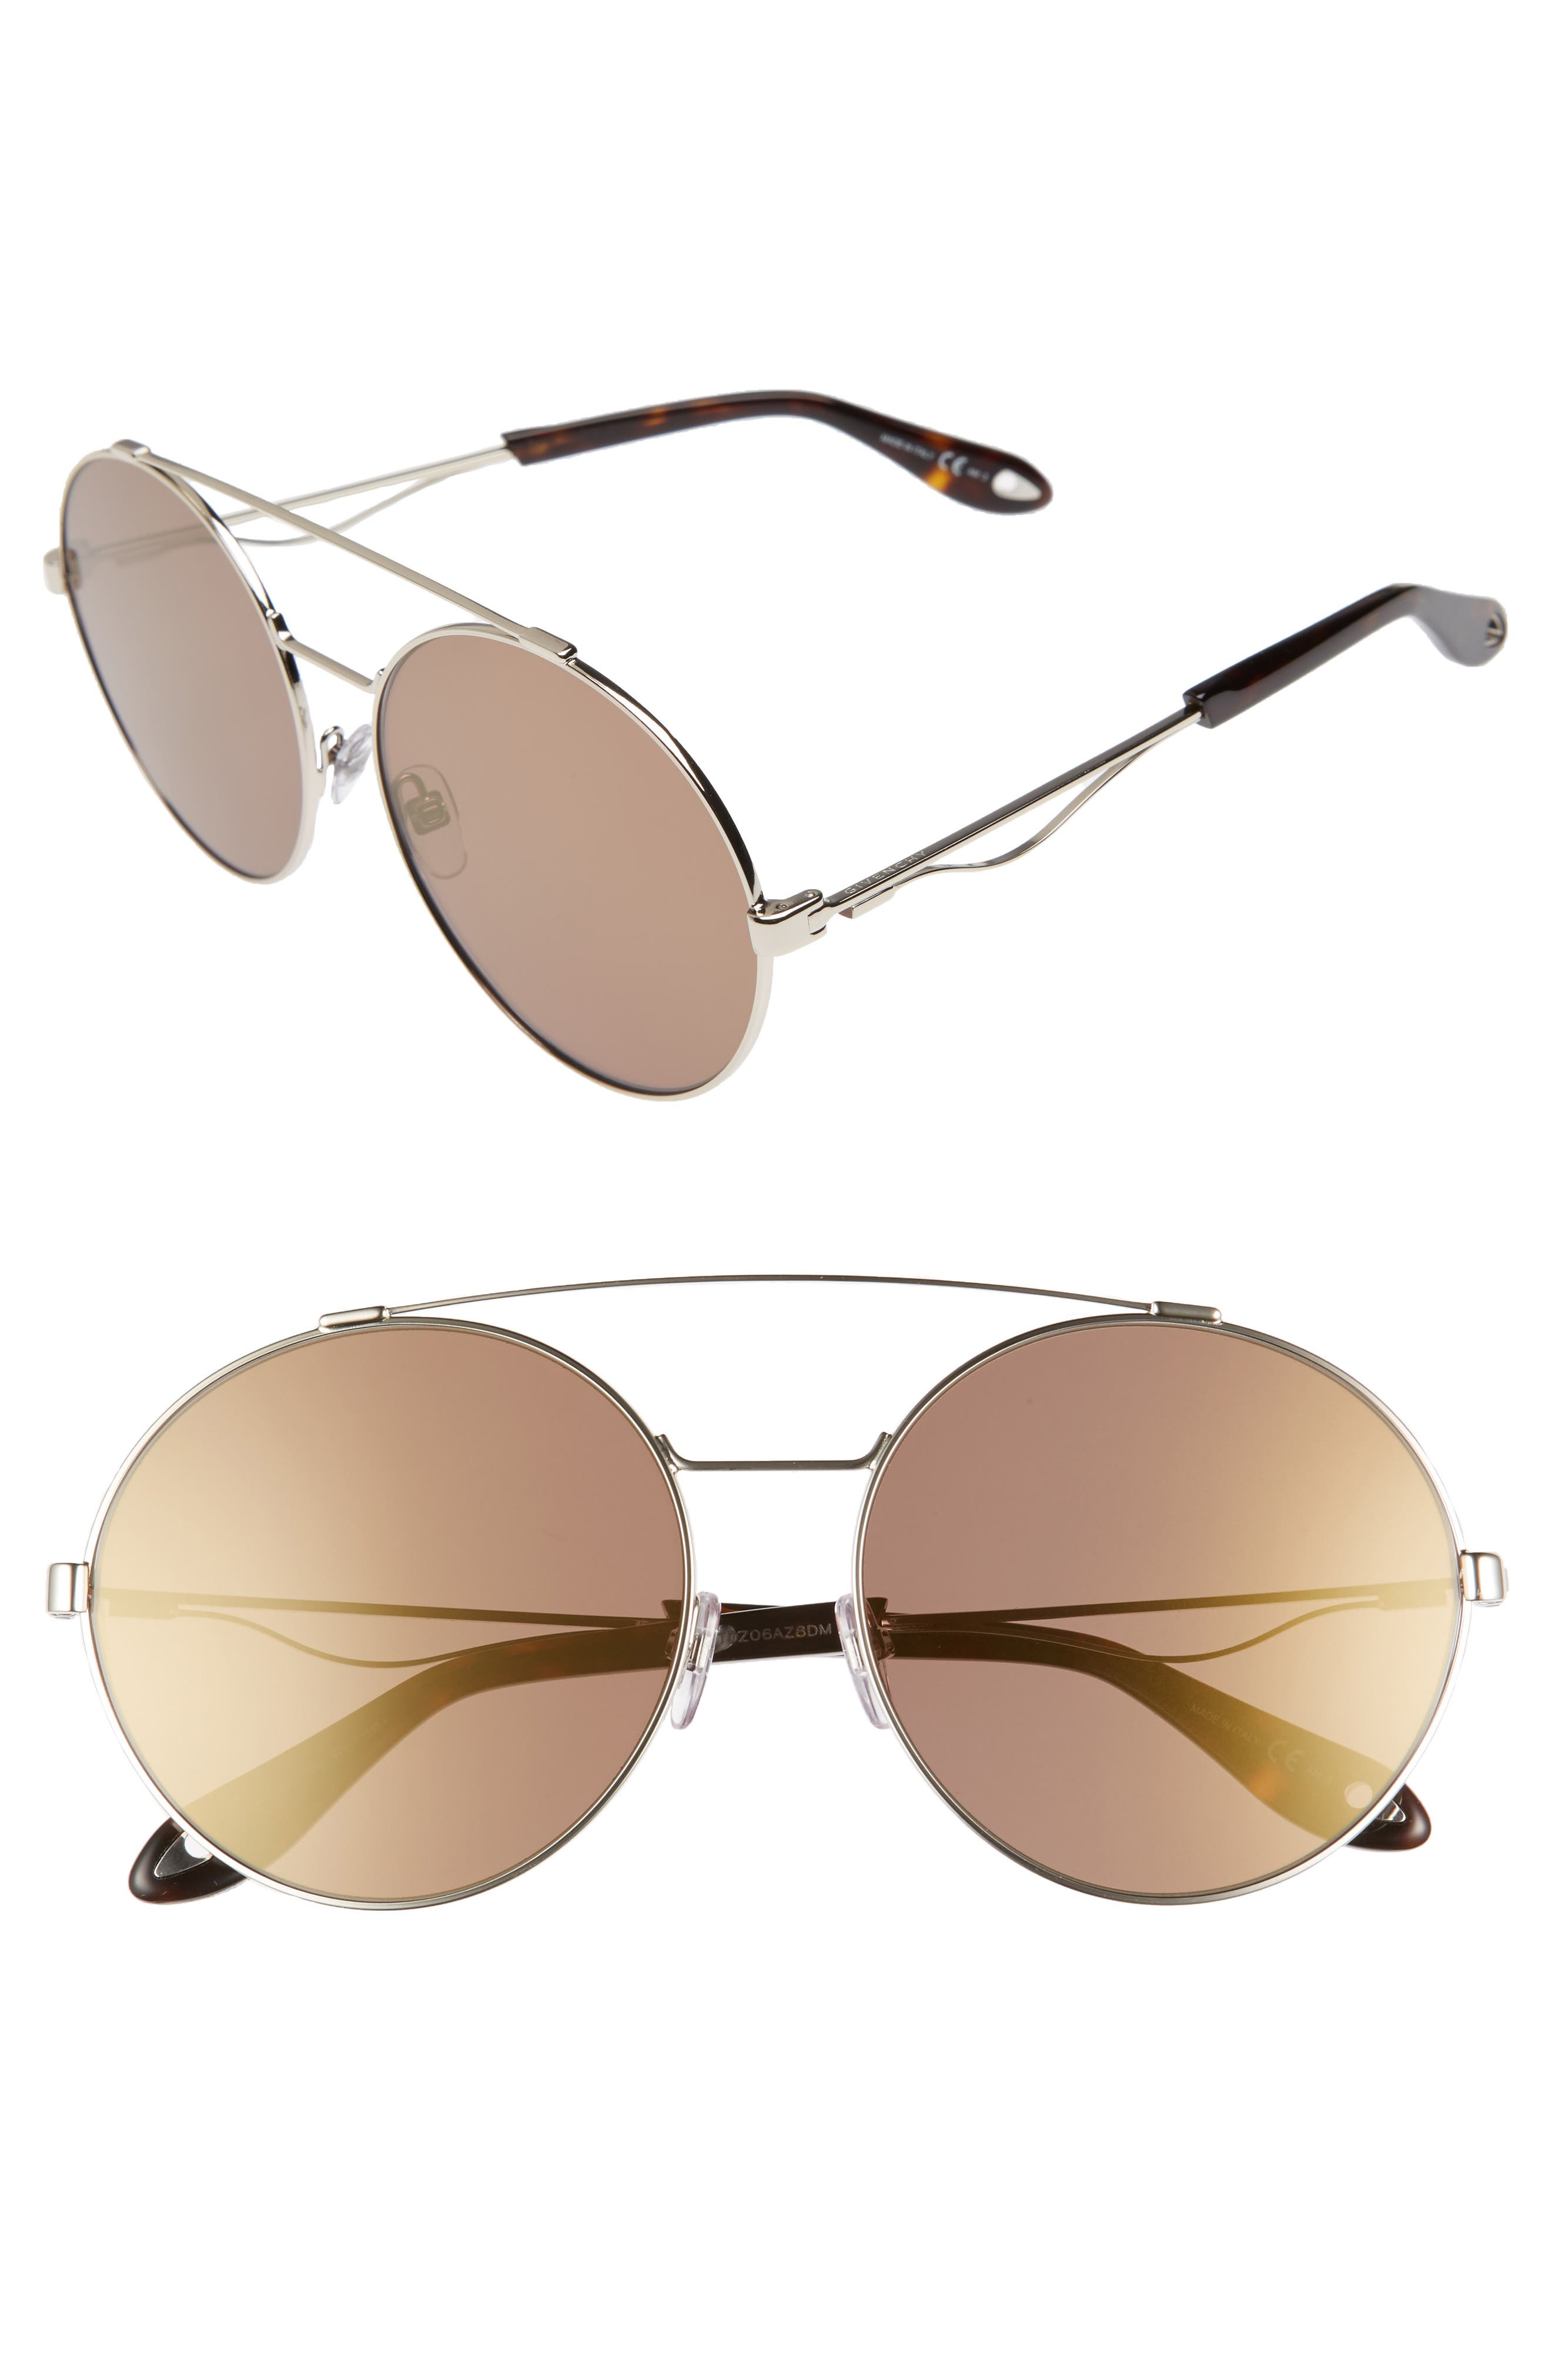 62mm Oversize Round Sunglasses,                             Main thumbnail 1, color,                             710